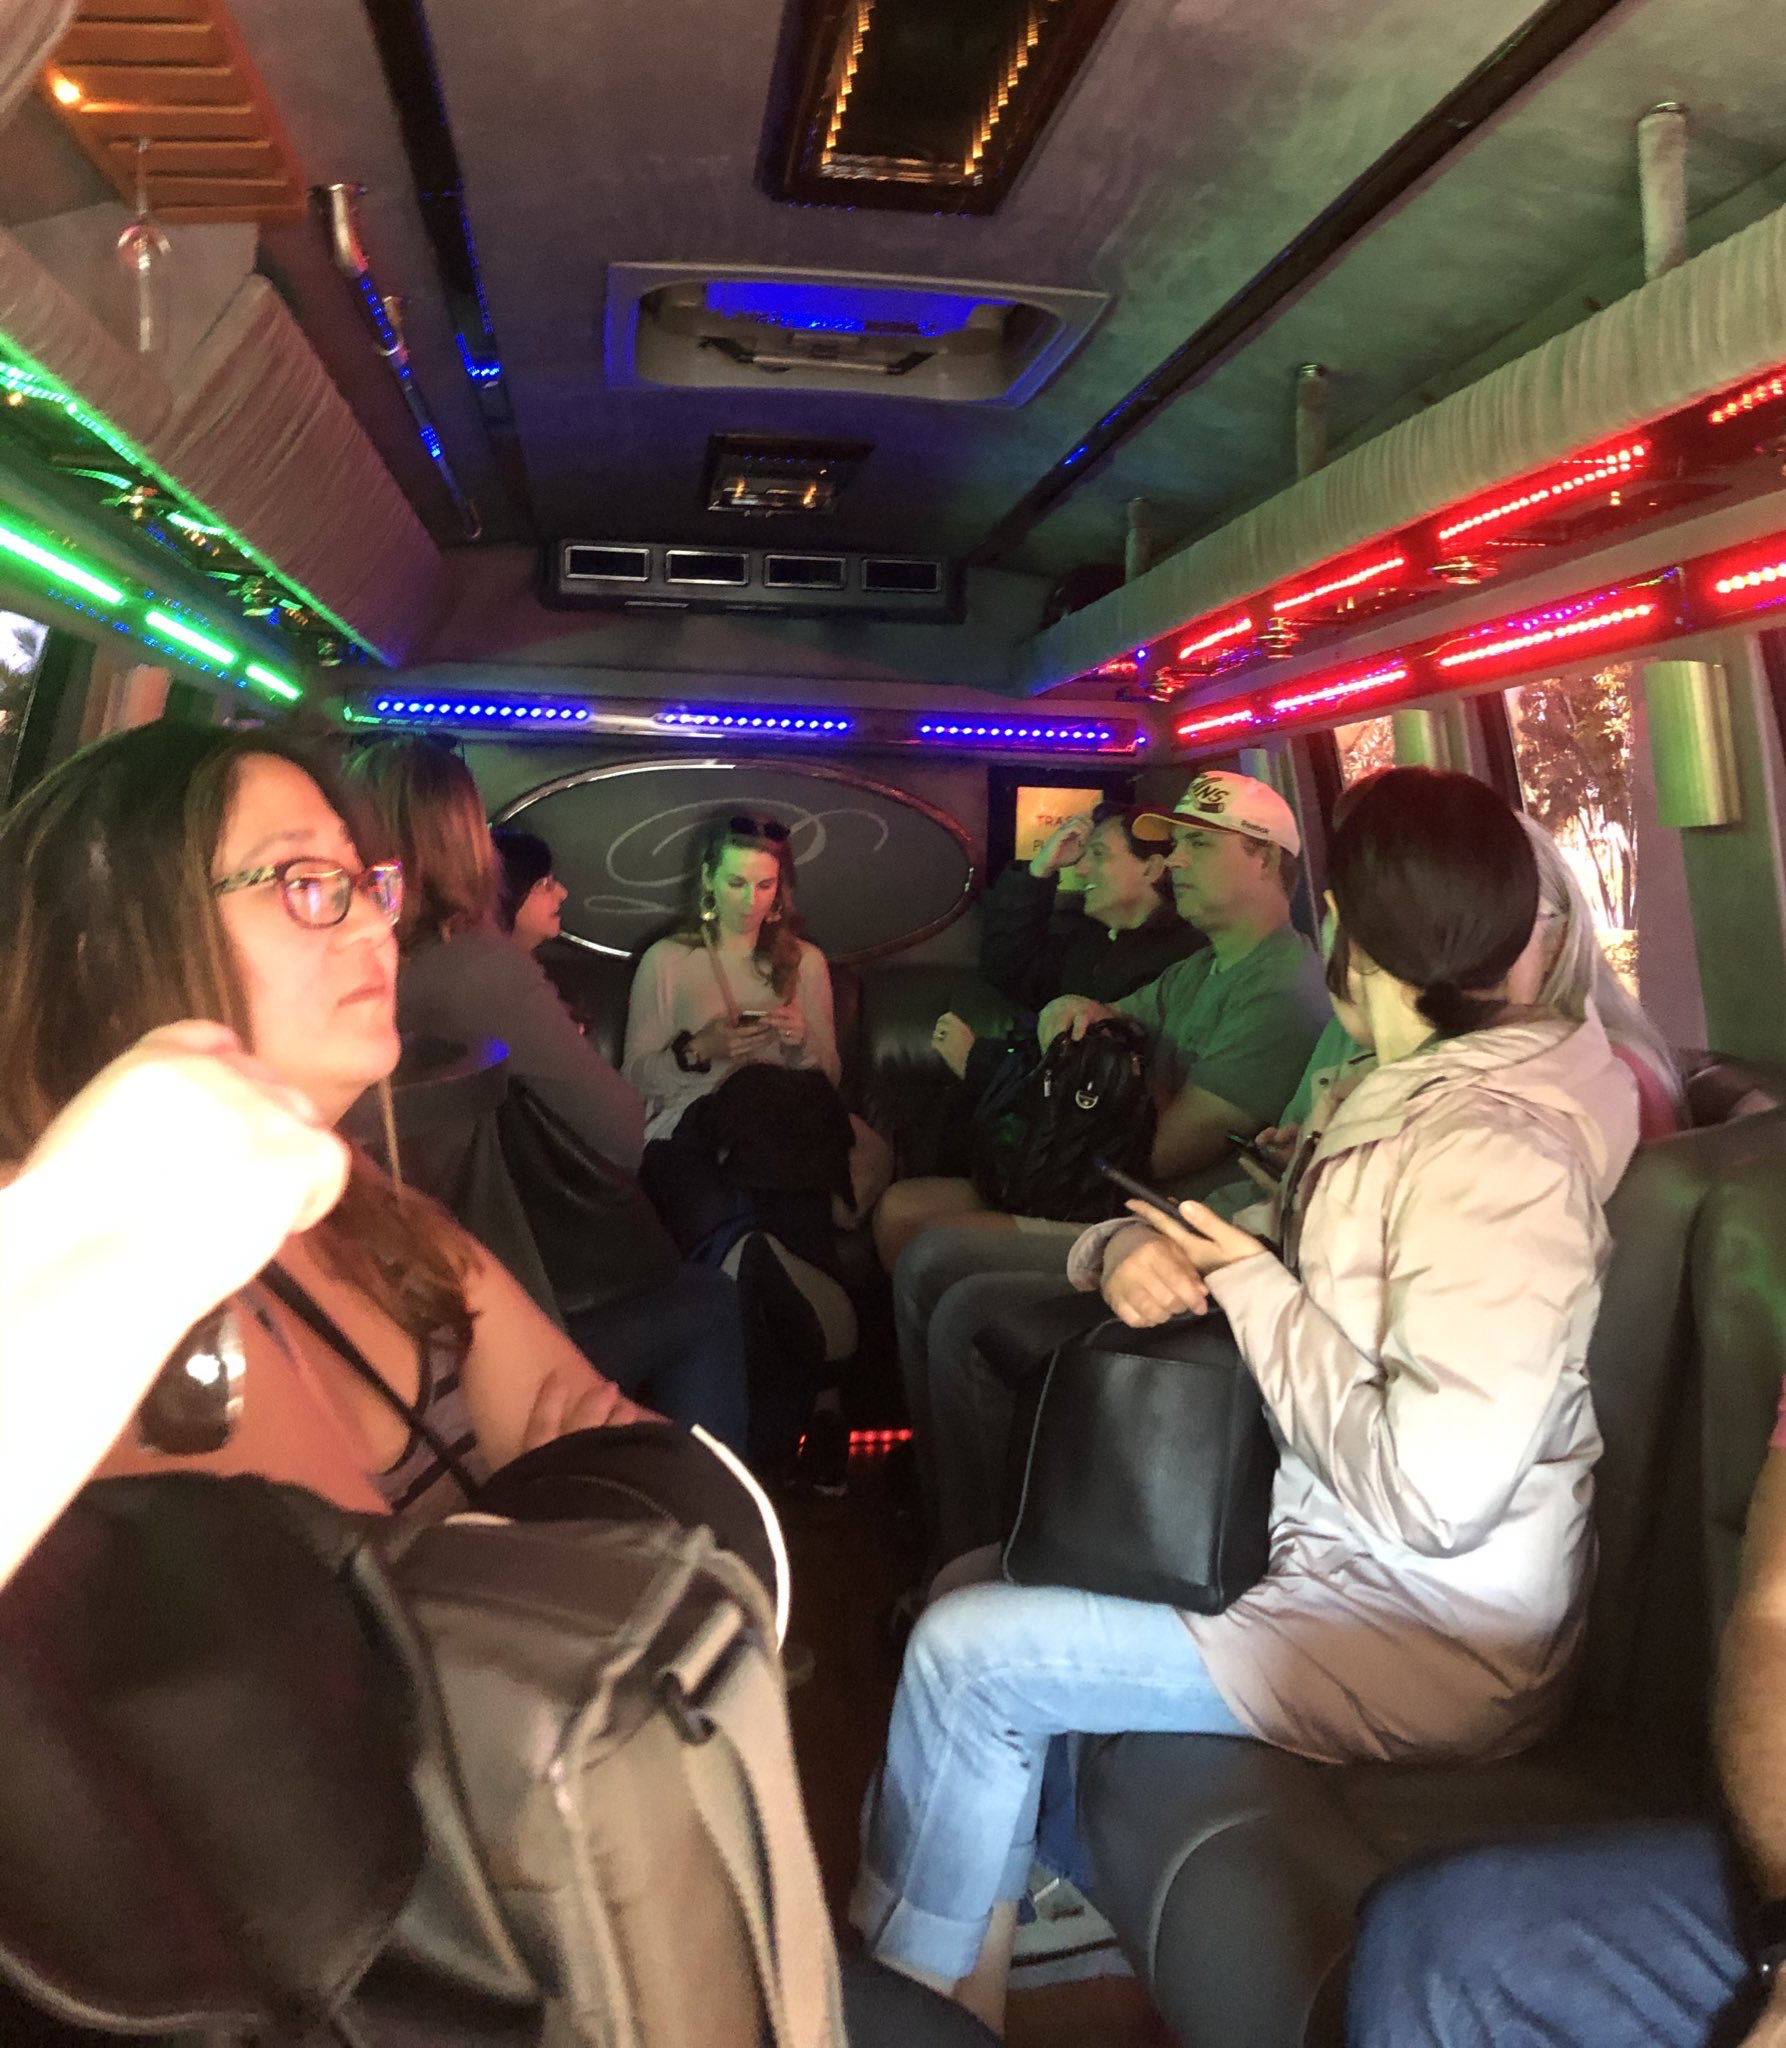 Party bus shuttle back to airport